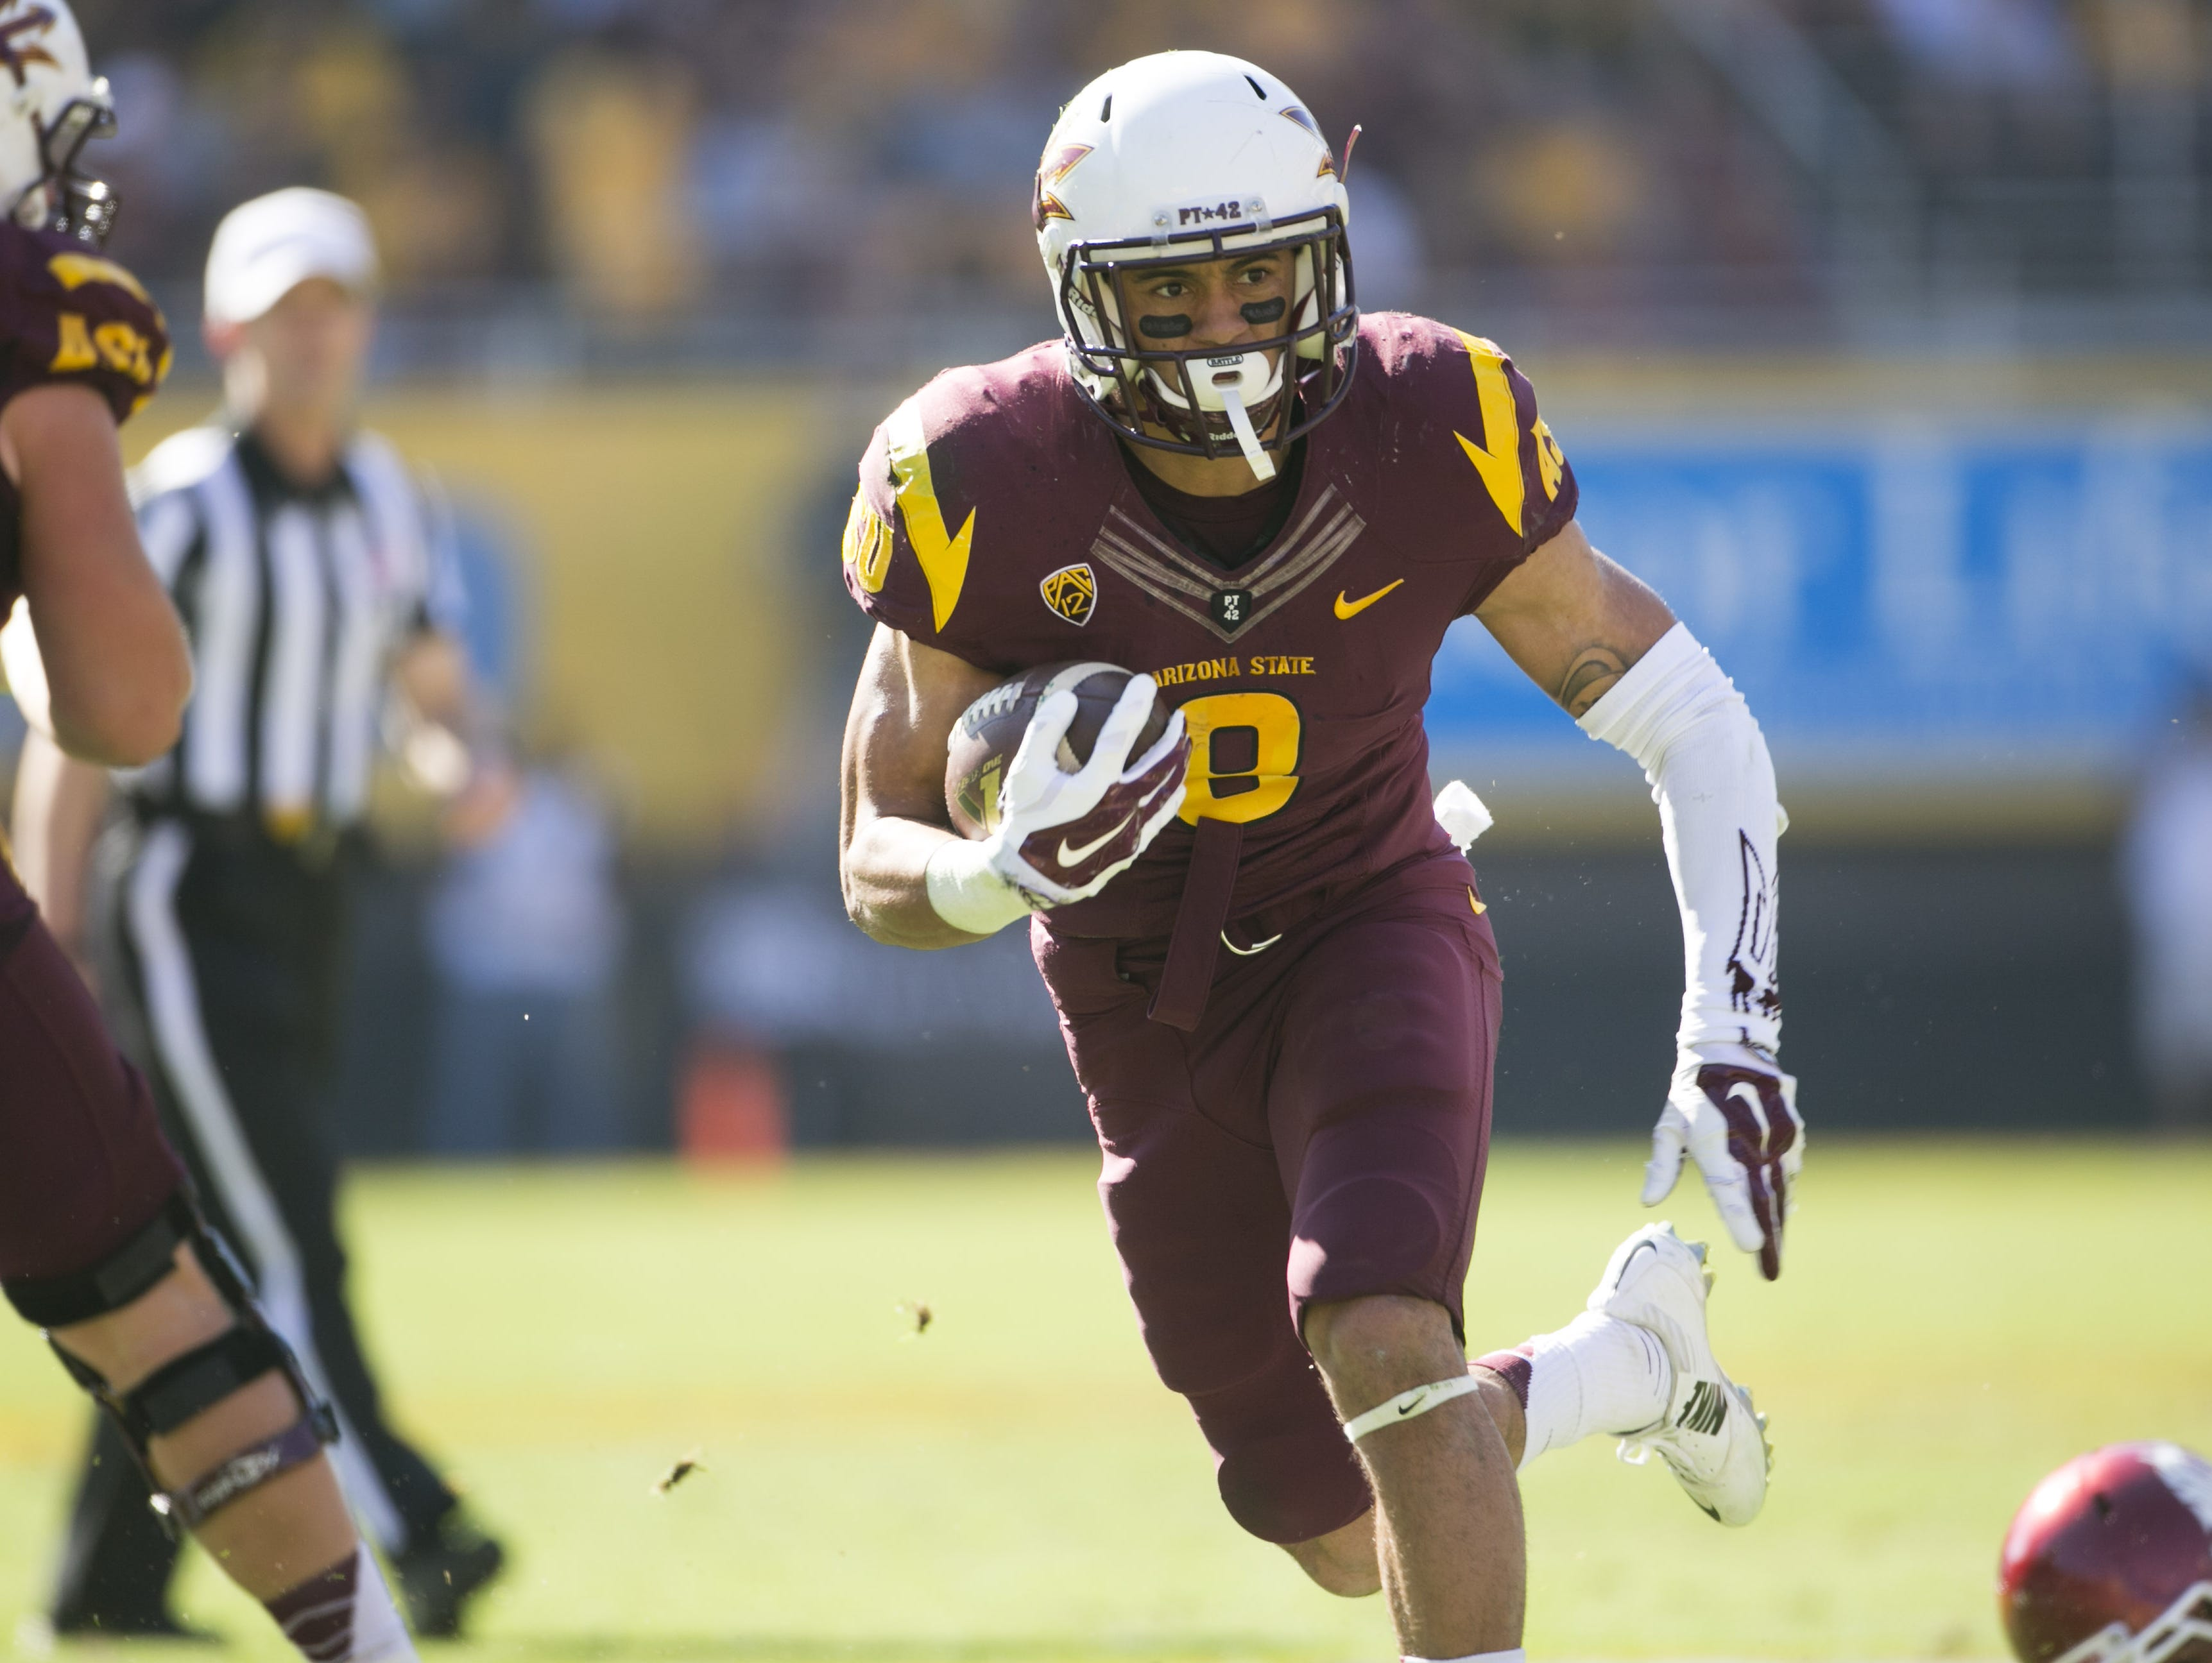 ASU running back D.J. Foster carries the ball for a touchdown against Washington State during the first half of the PAC-12 college football game at Sun Devil Stadium in Tempe on Saturday, November 22, 2014.